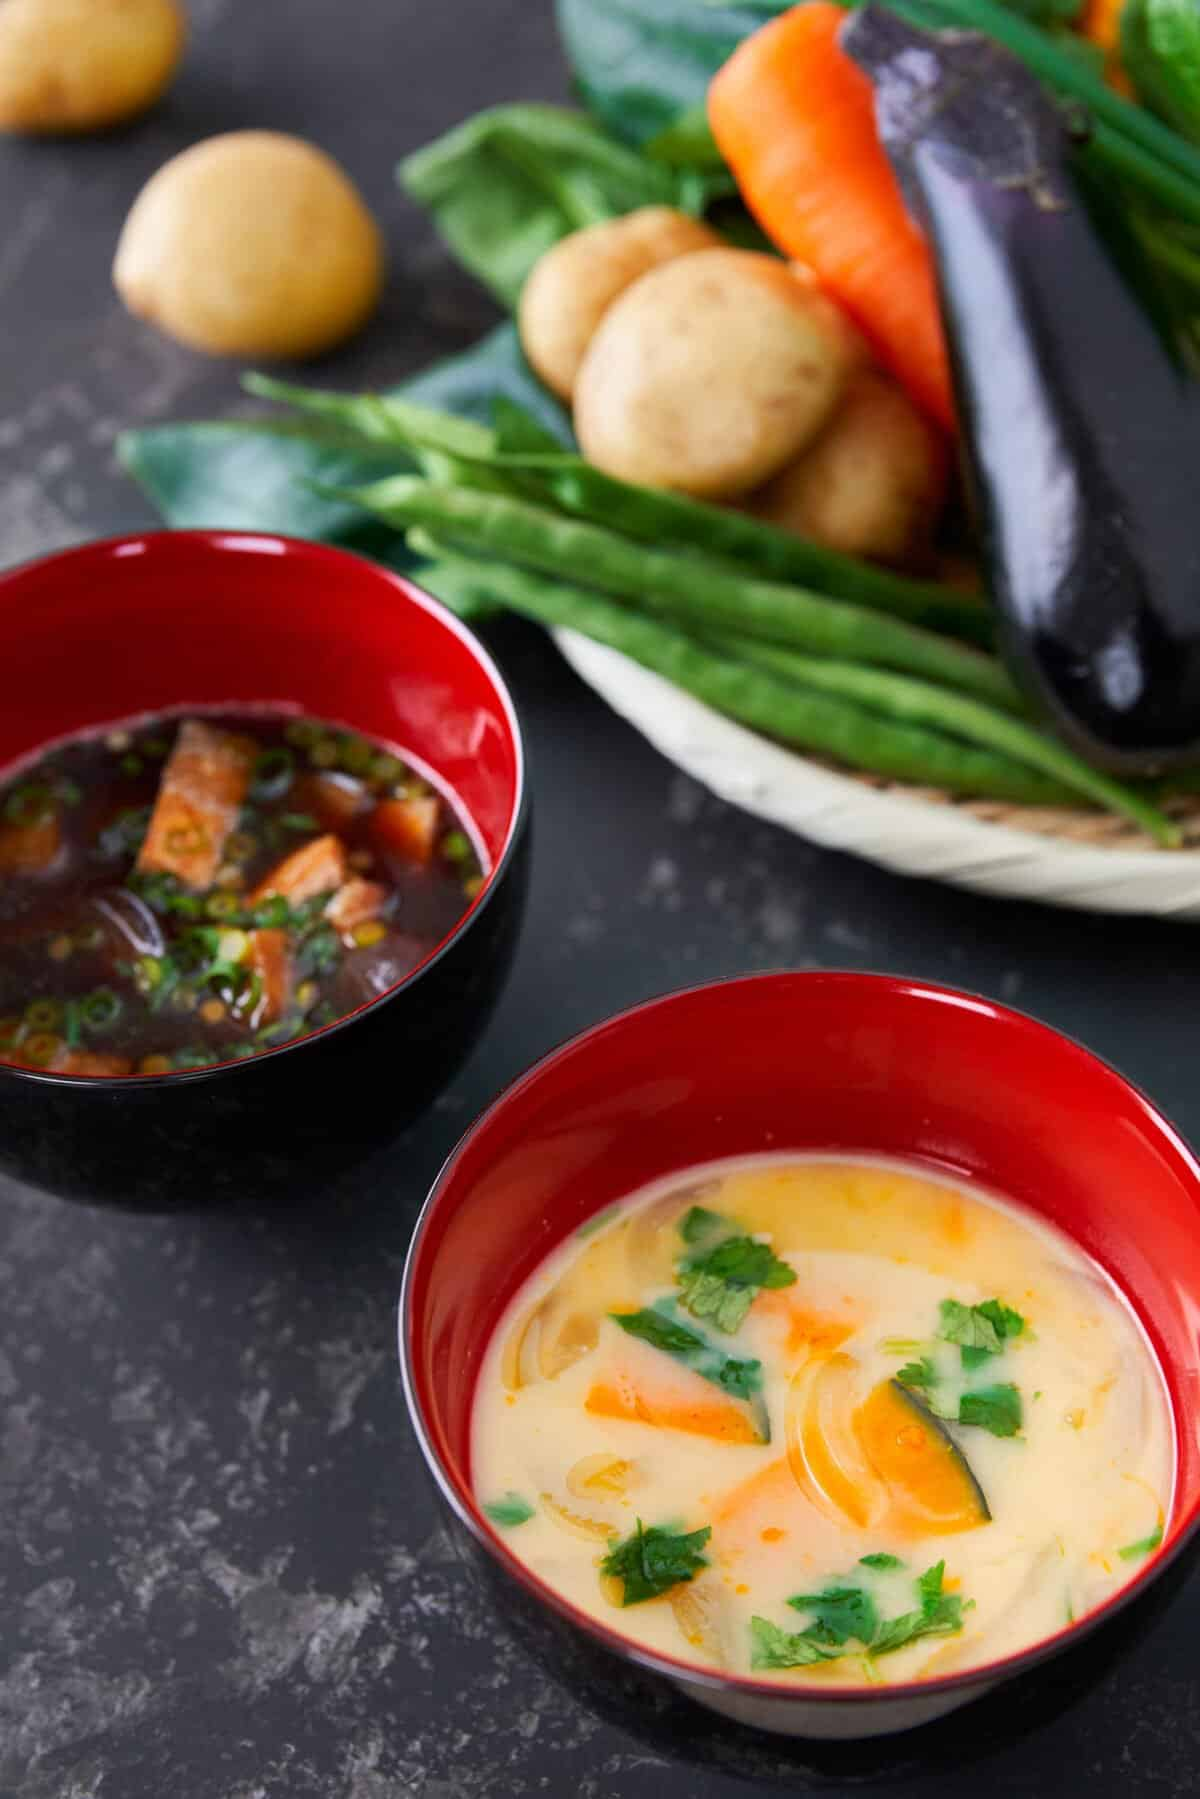 The ultimate guide to making authentic Japanese miso soup in under 10 minutes.